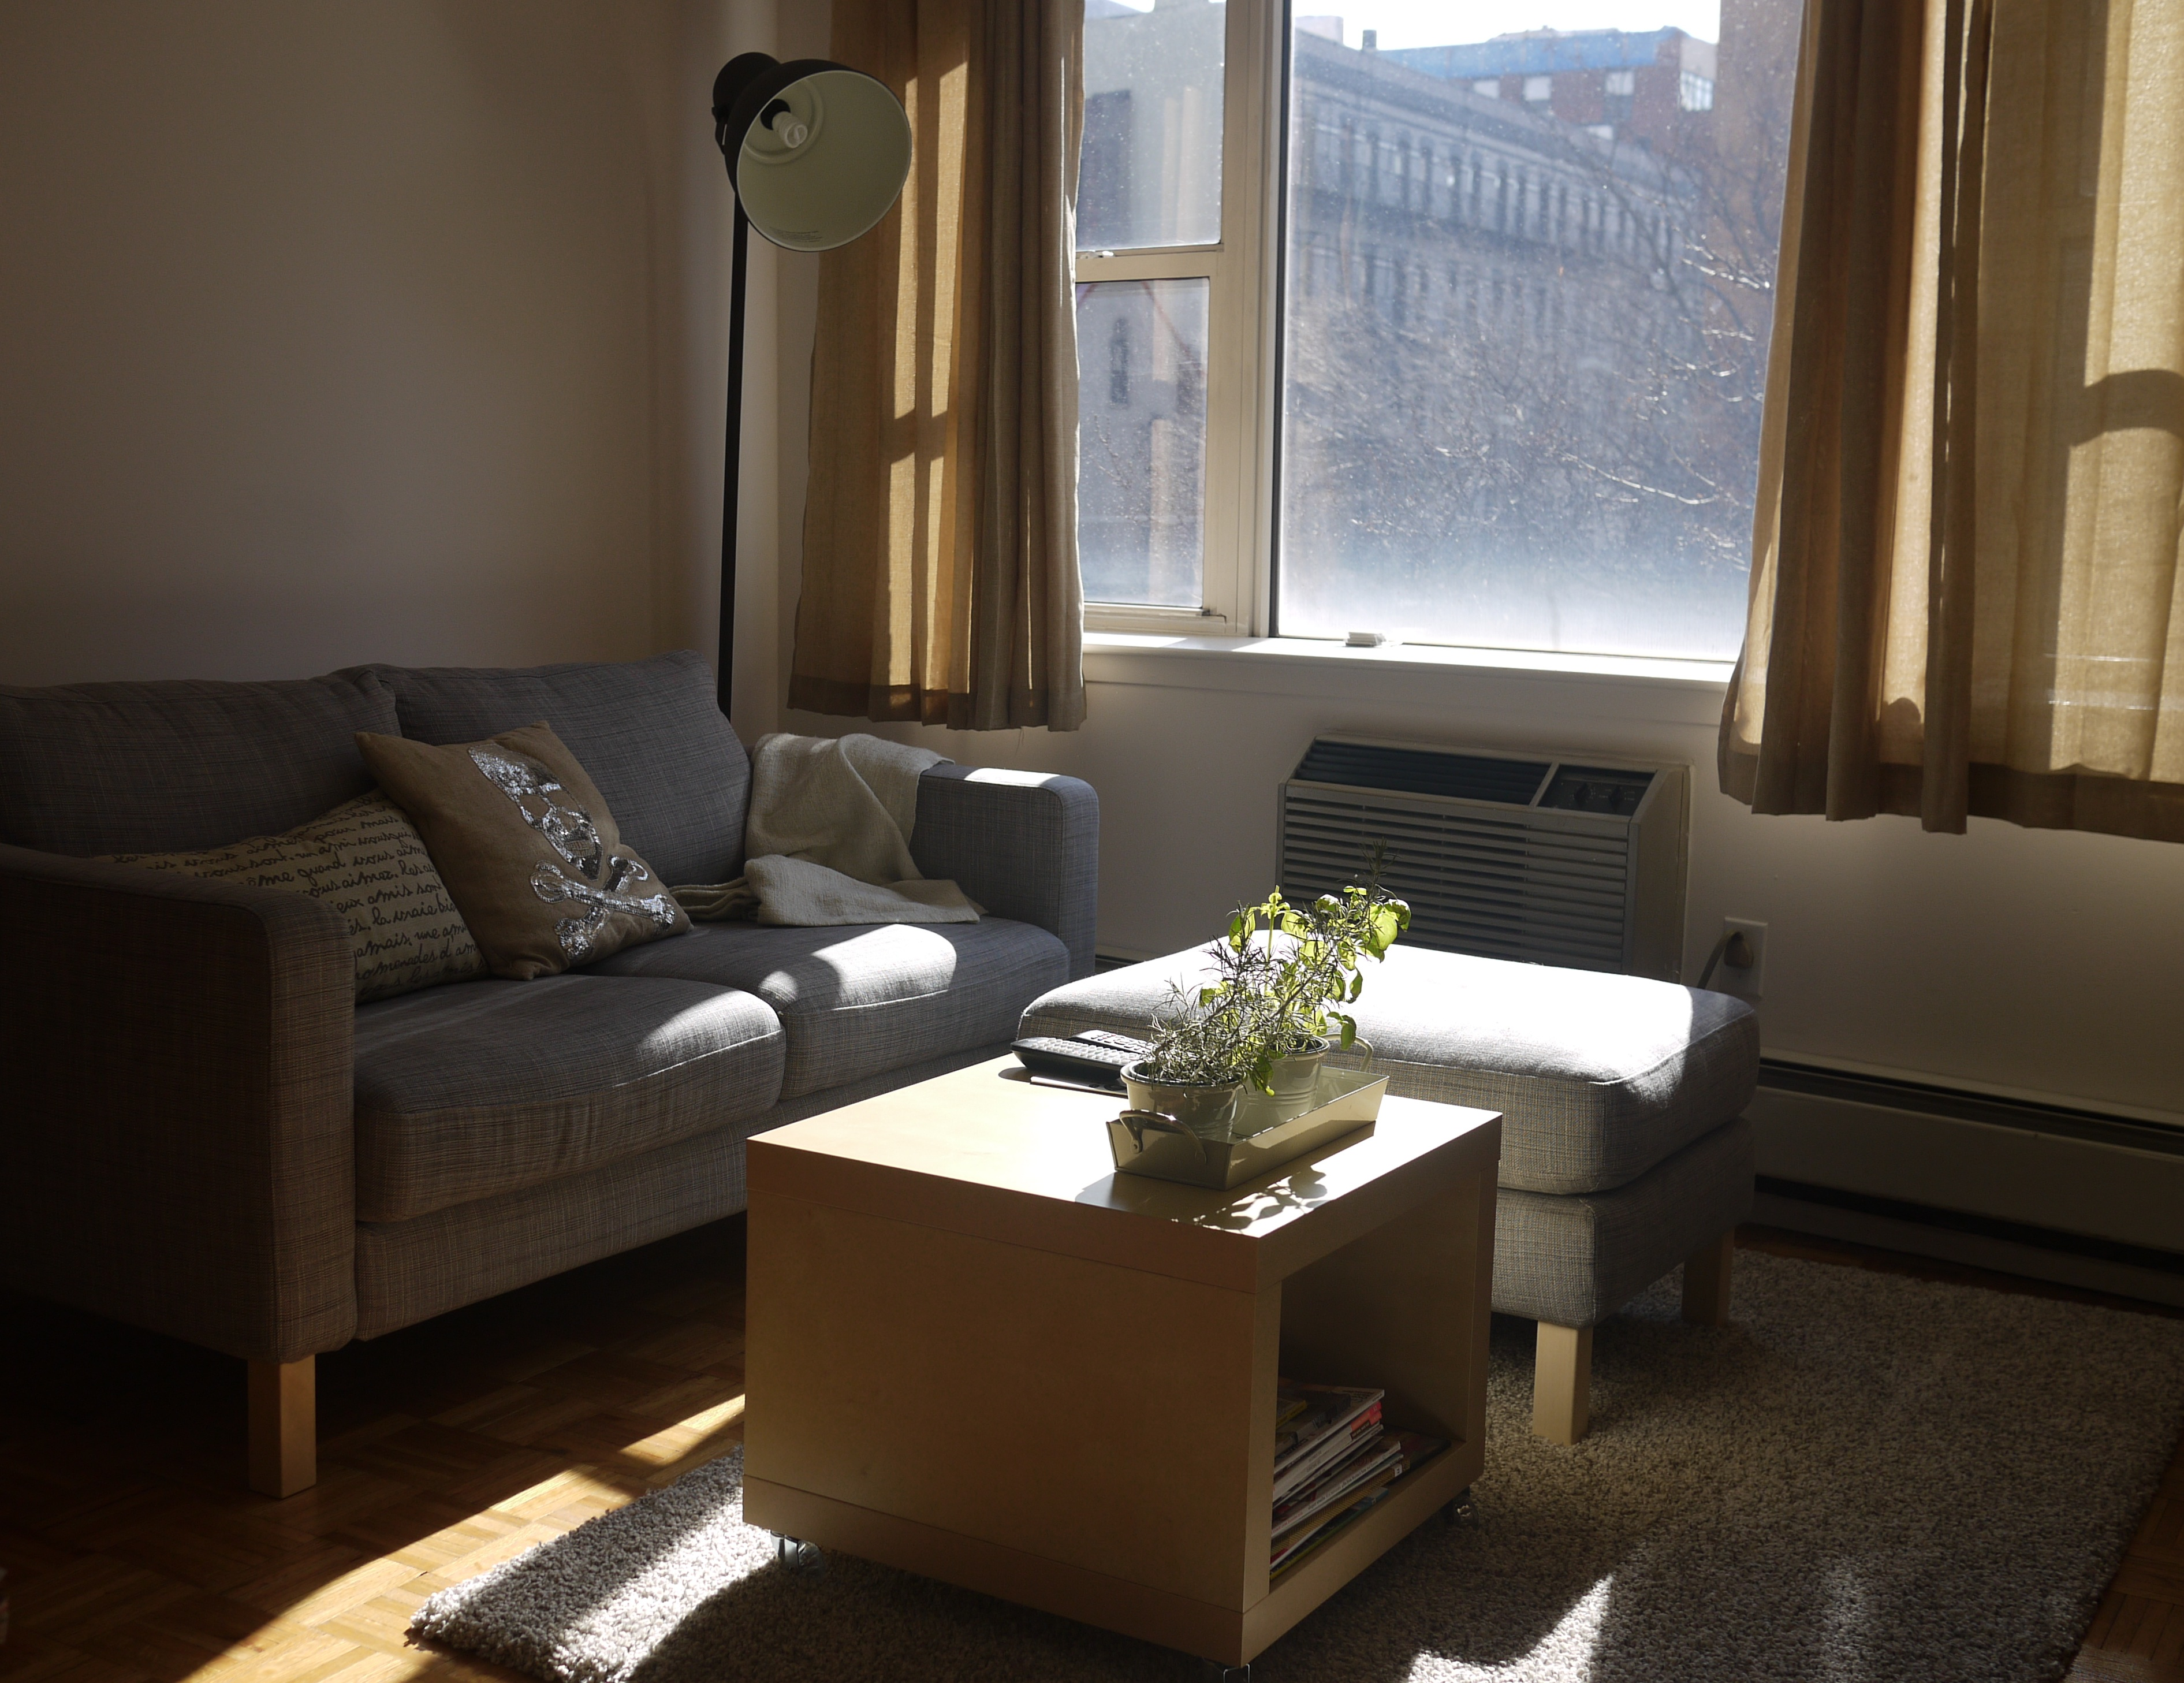 Ikea Karlstad Couch And Ottoman Lack Side Table Stuff That I Bought